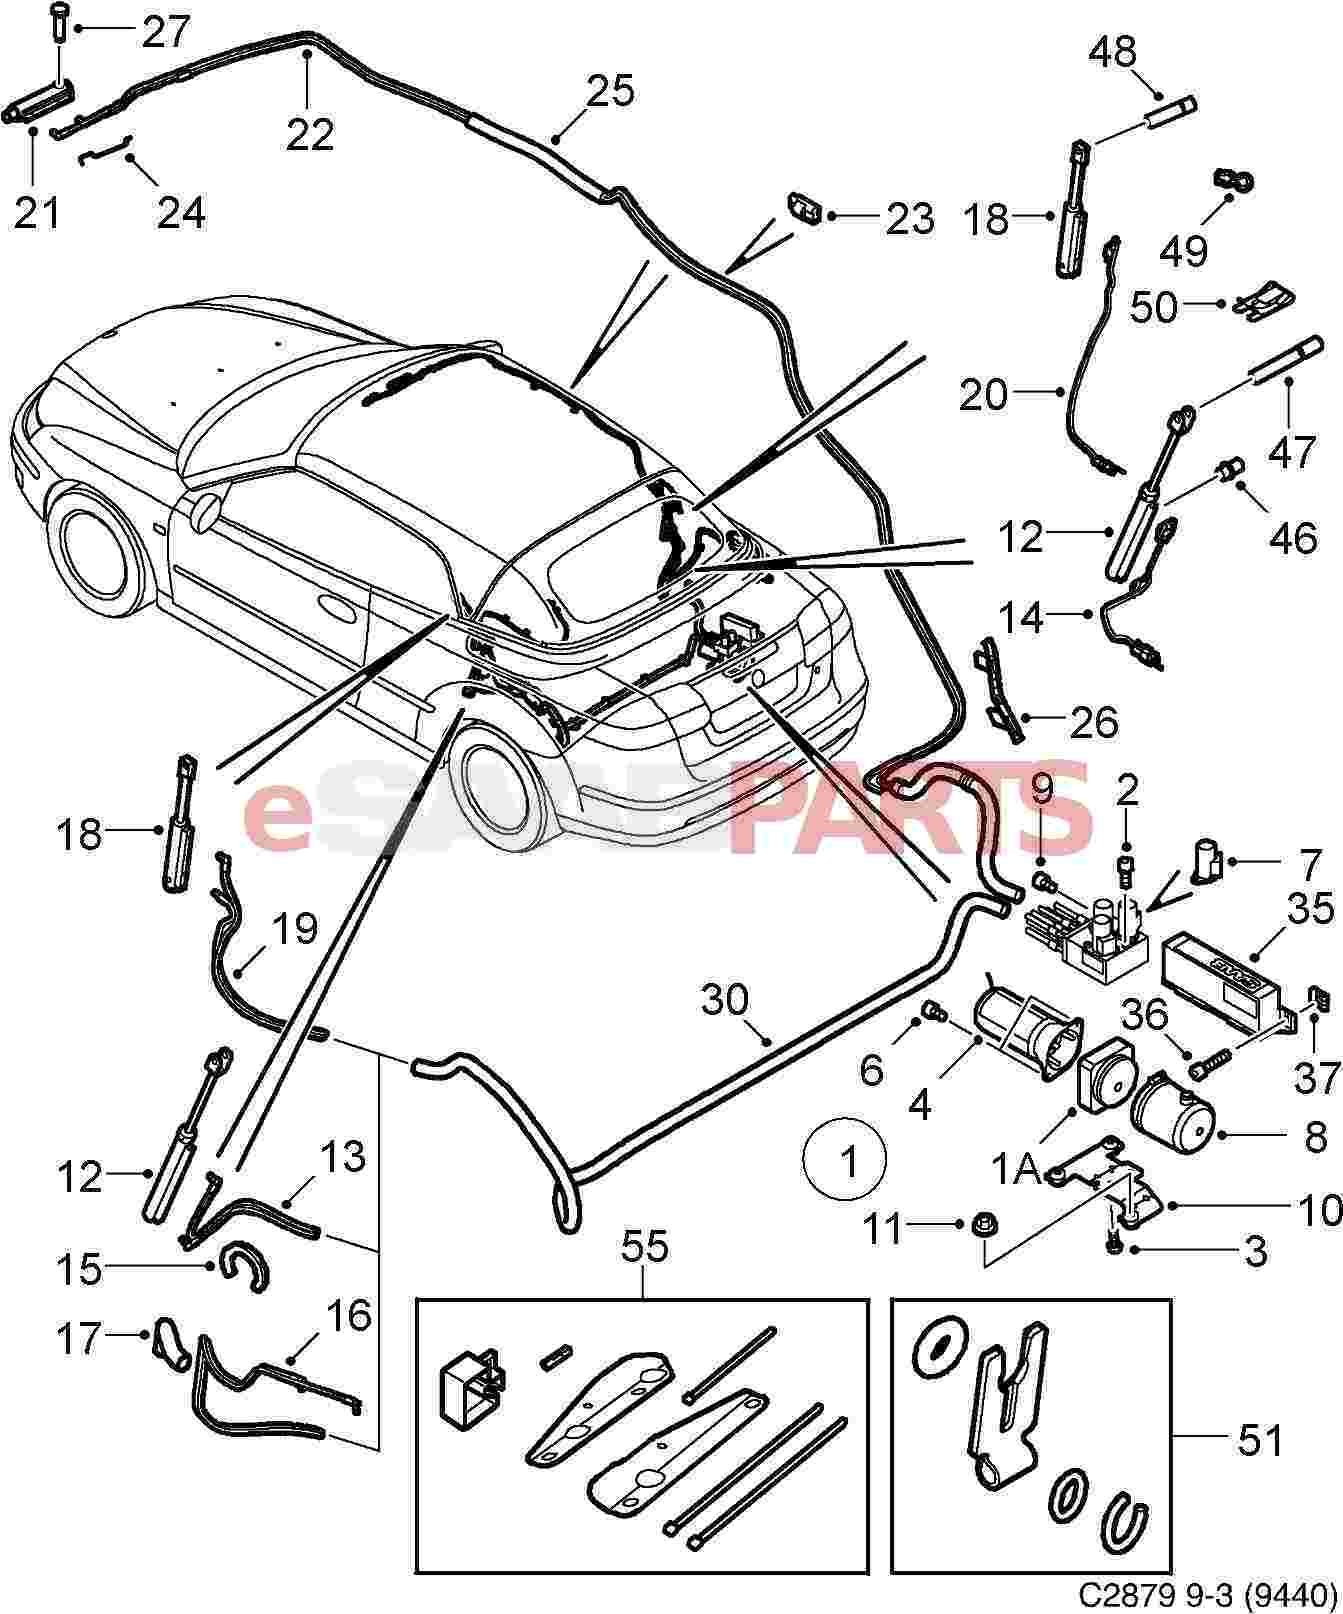 saab 9 3 arc parts diagram  u2022 wiring diagram for free